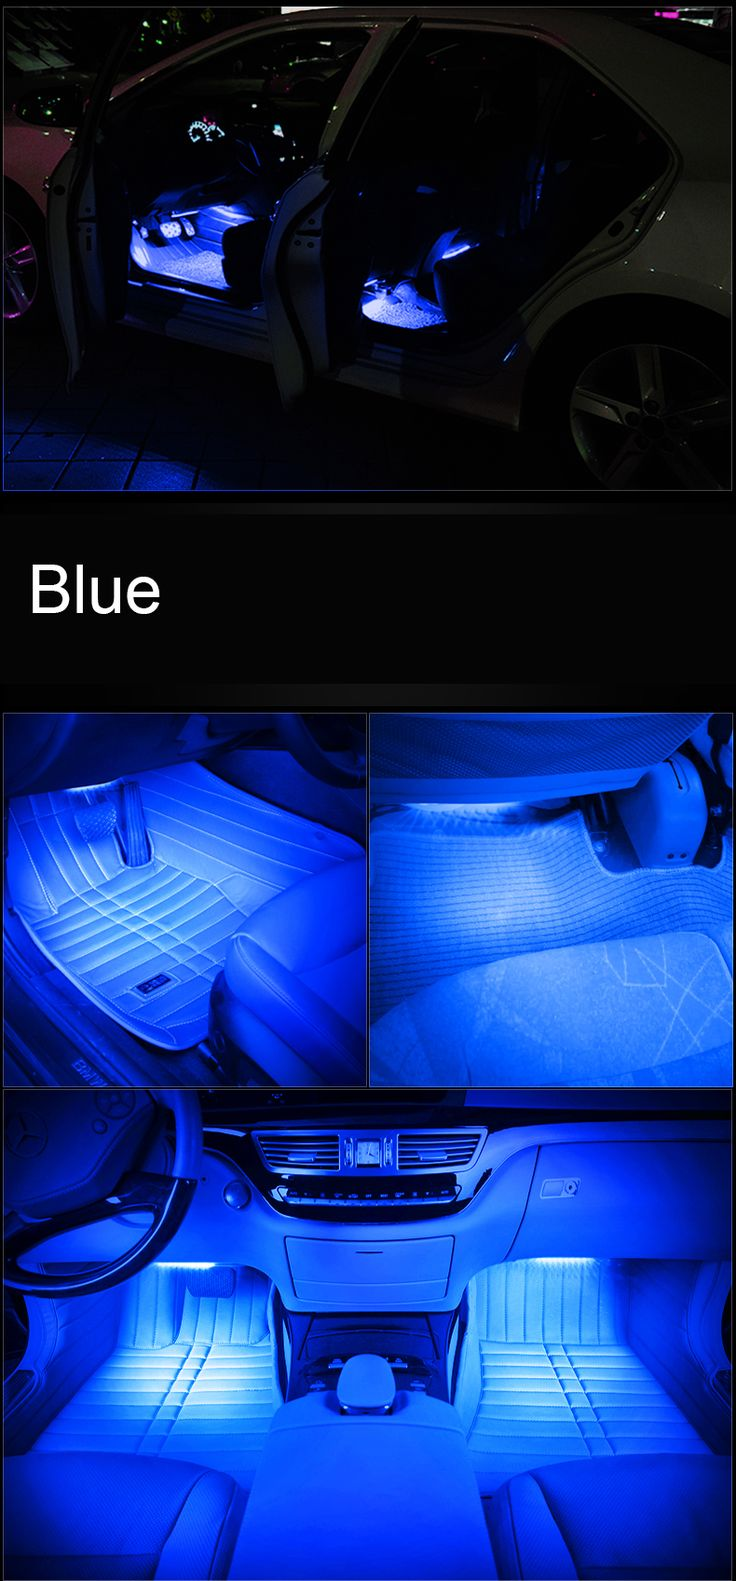 Led Light Strips For Car Interior 22 Best Car Images On Pinterest  Cars Autos And Car Interior